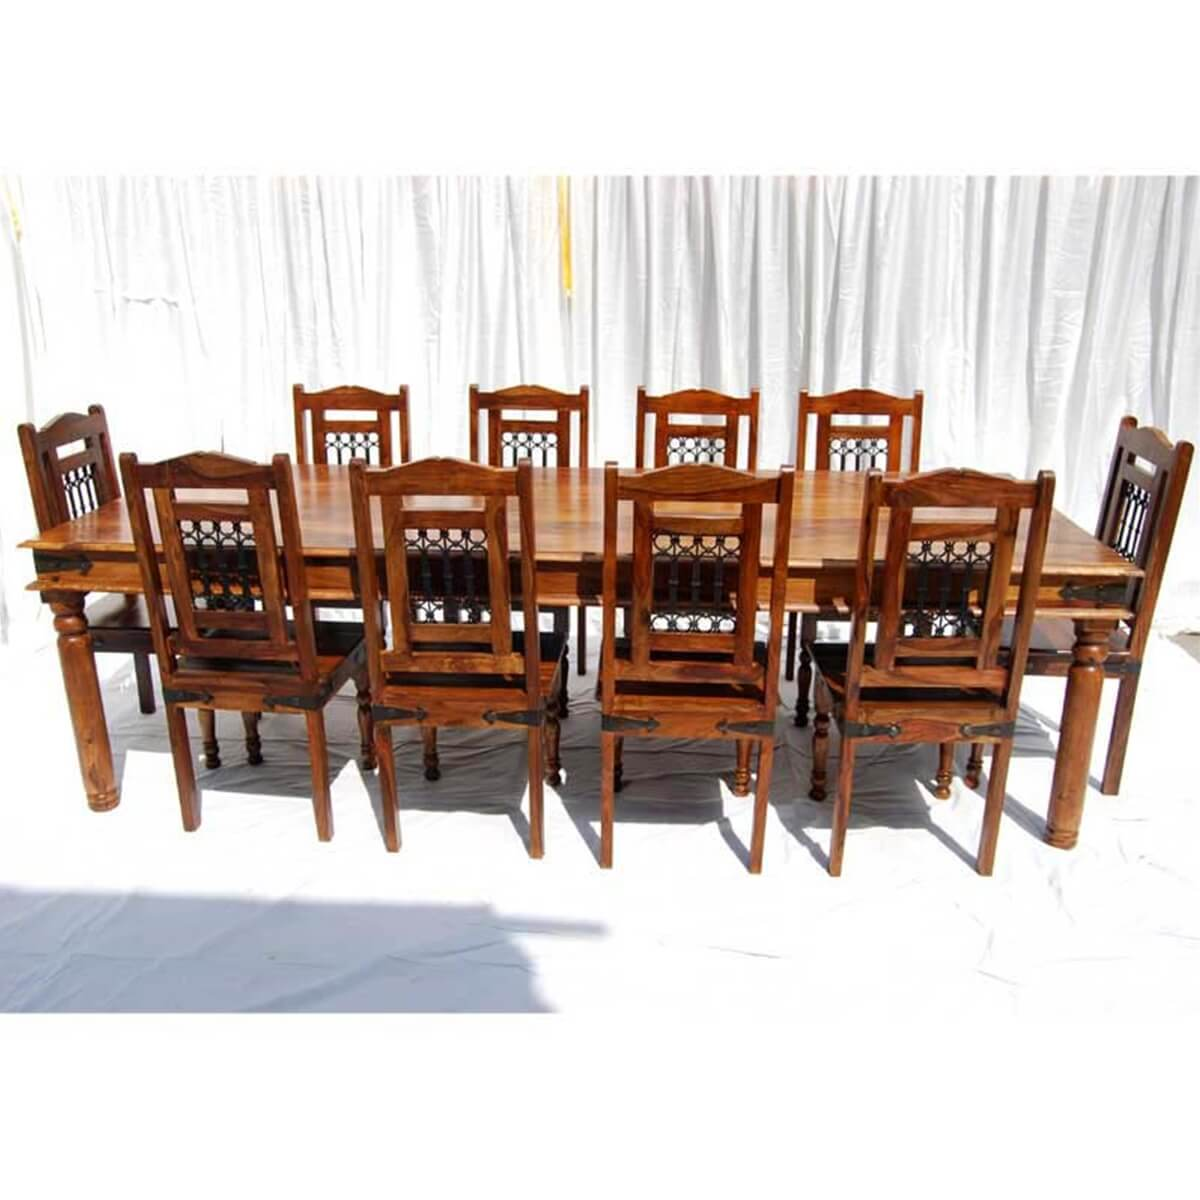 Solid wood large rustic dining room table chair buffet for Dining room table and buffet sets